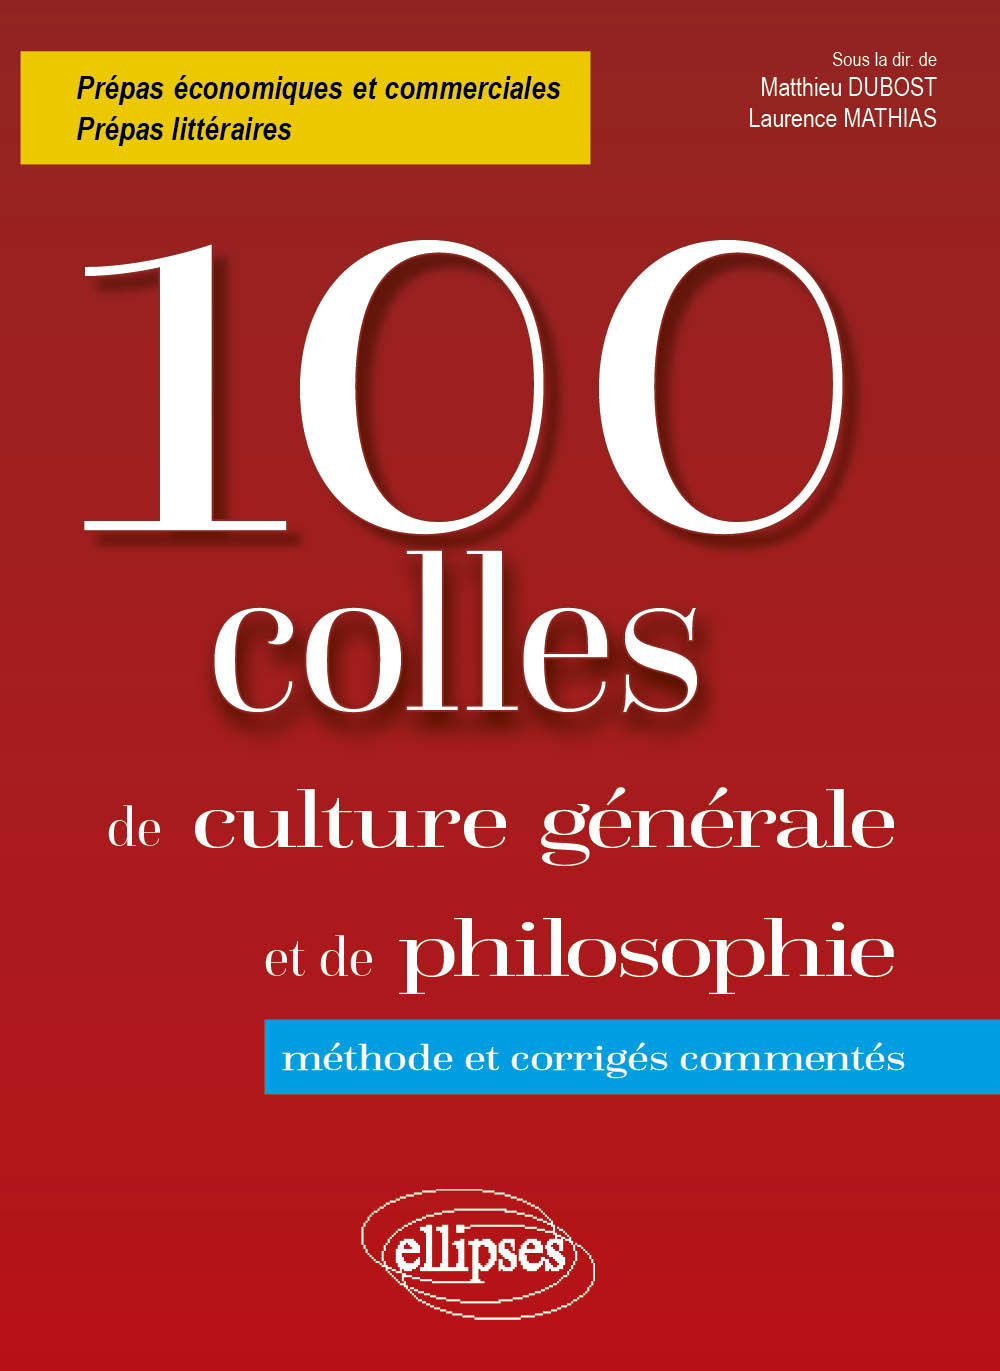 100 COLLES DE CULTURE GENERALE ET DE PHILOSOPHIE METHODE ET CORRIGES COMMENTES PREPAS HEC ET LITTER.